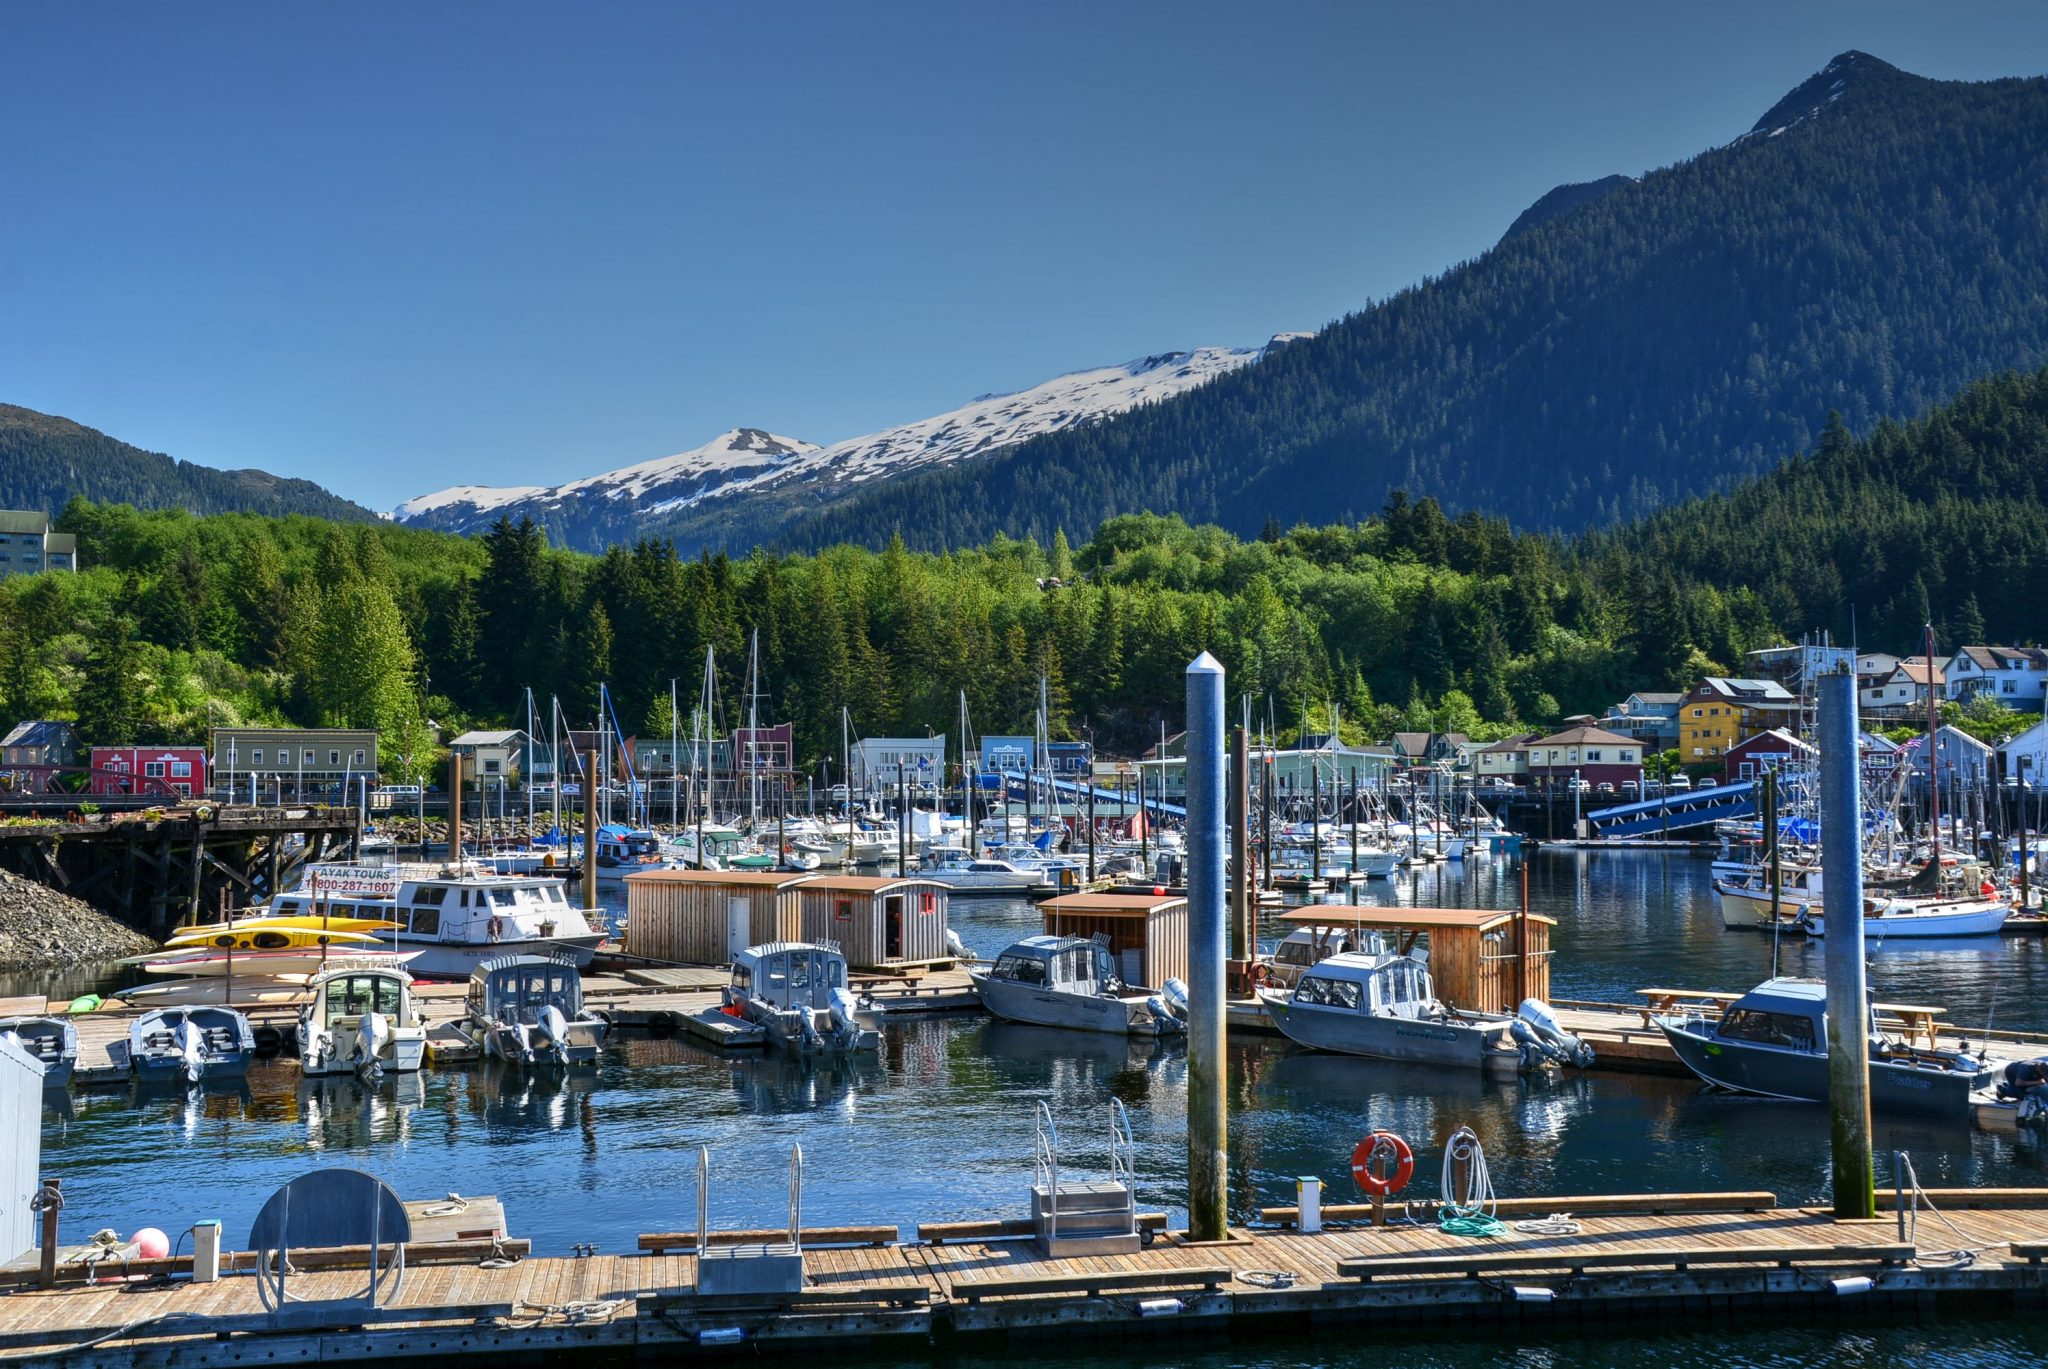 Our final port of call-Ketchikan